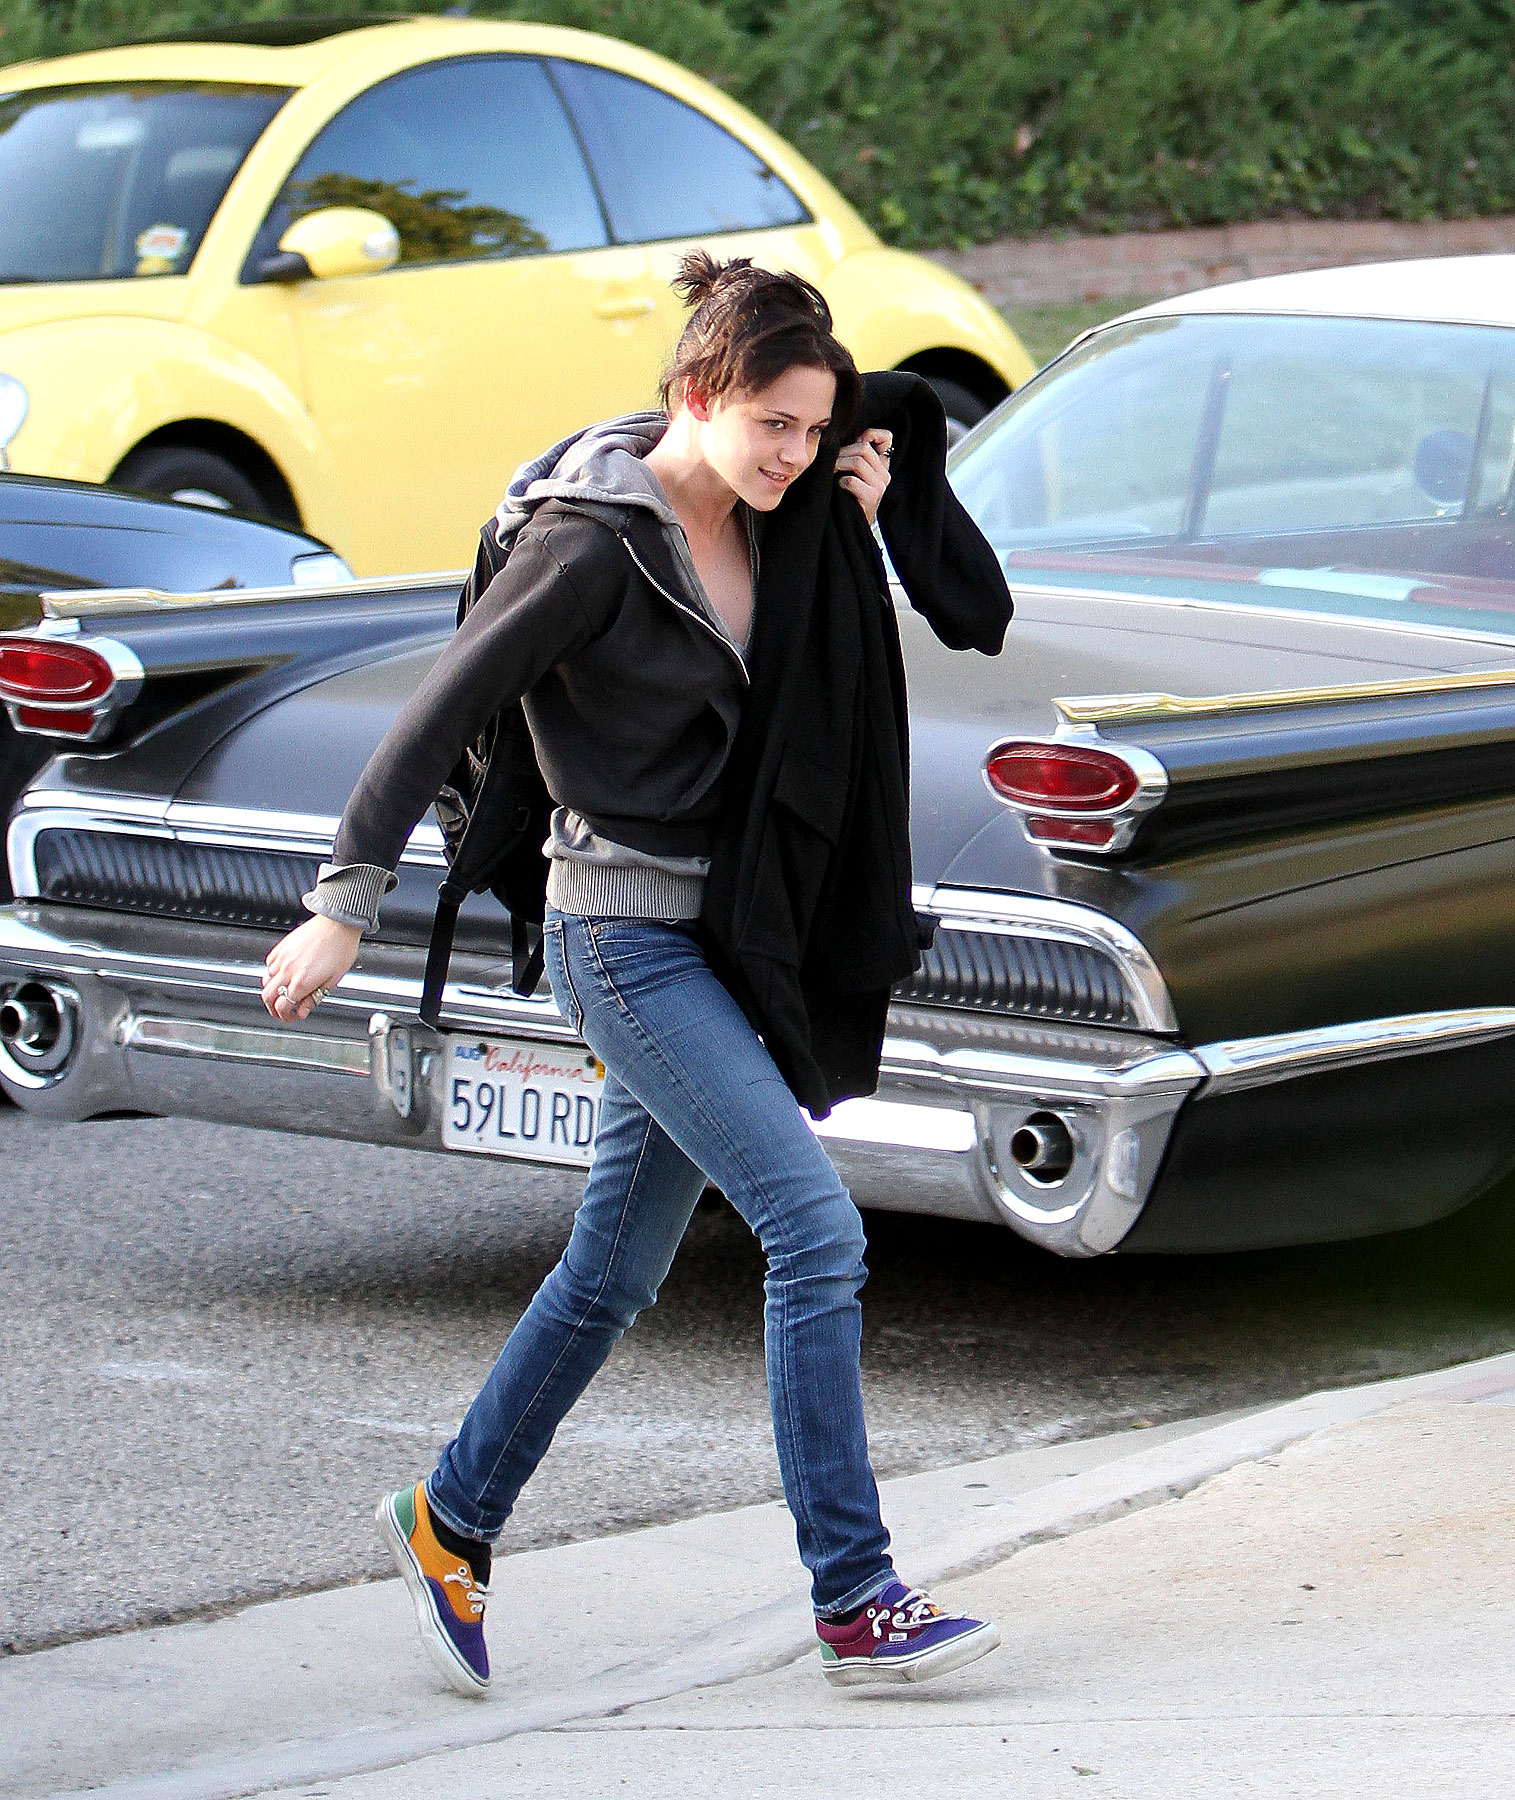 PHOTO GALLERY: Kristen Stewart is Homeward Bound